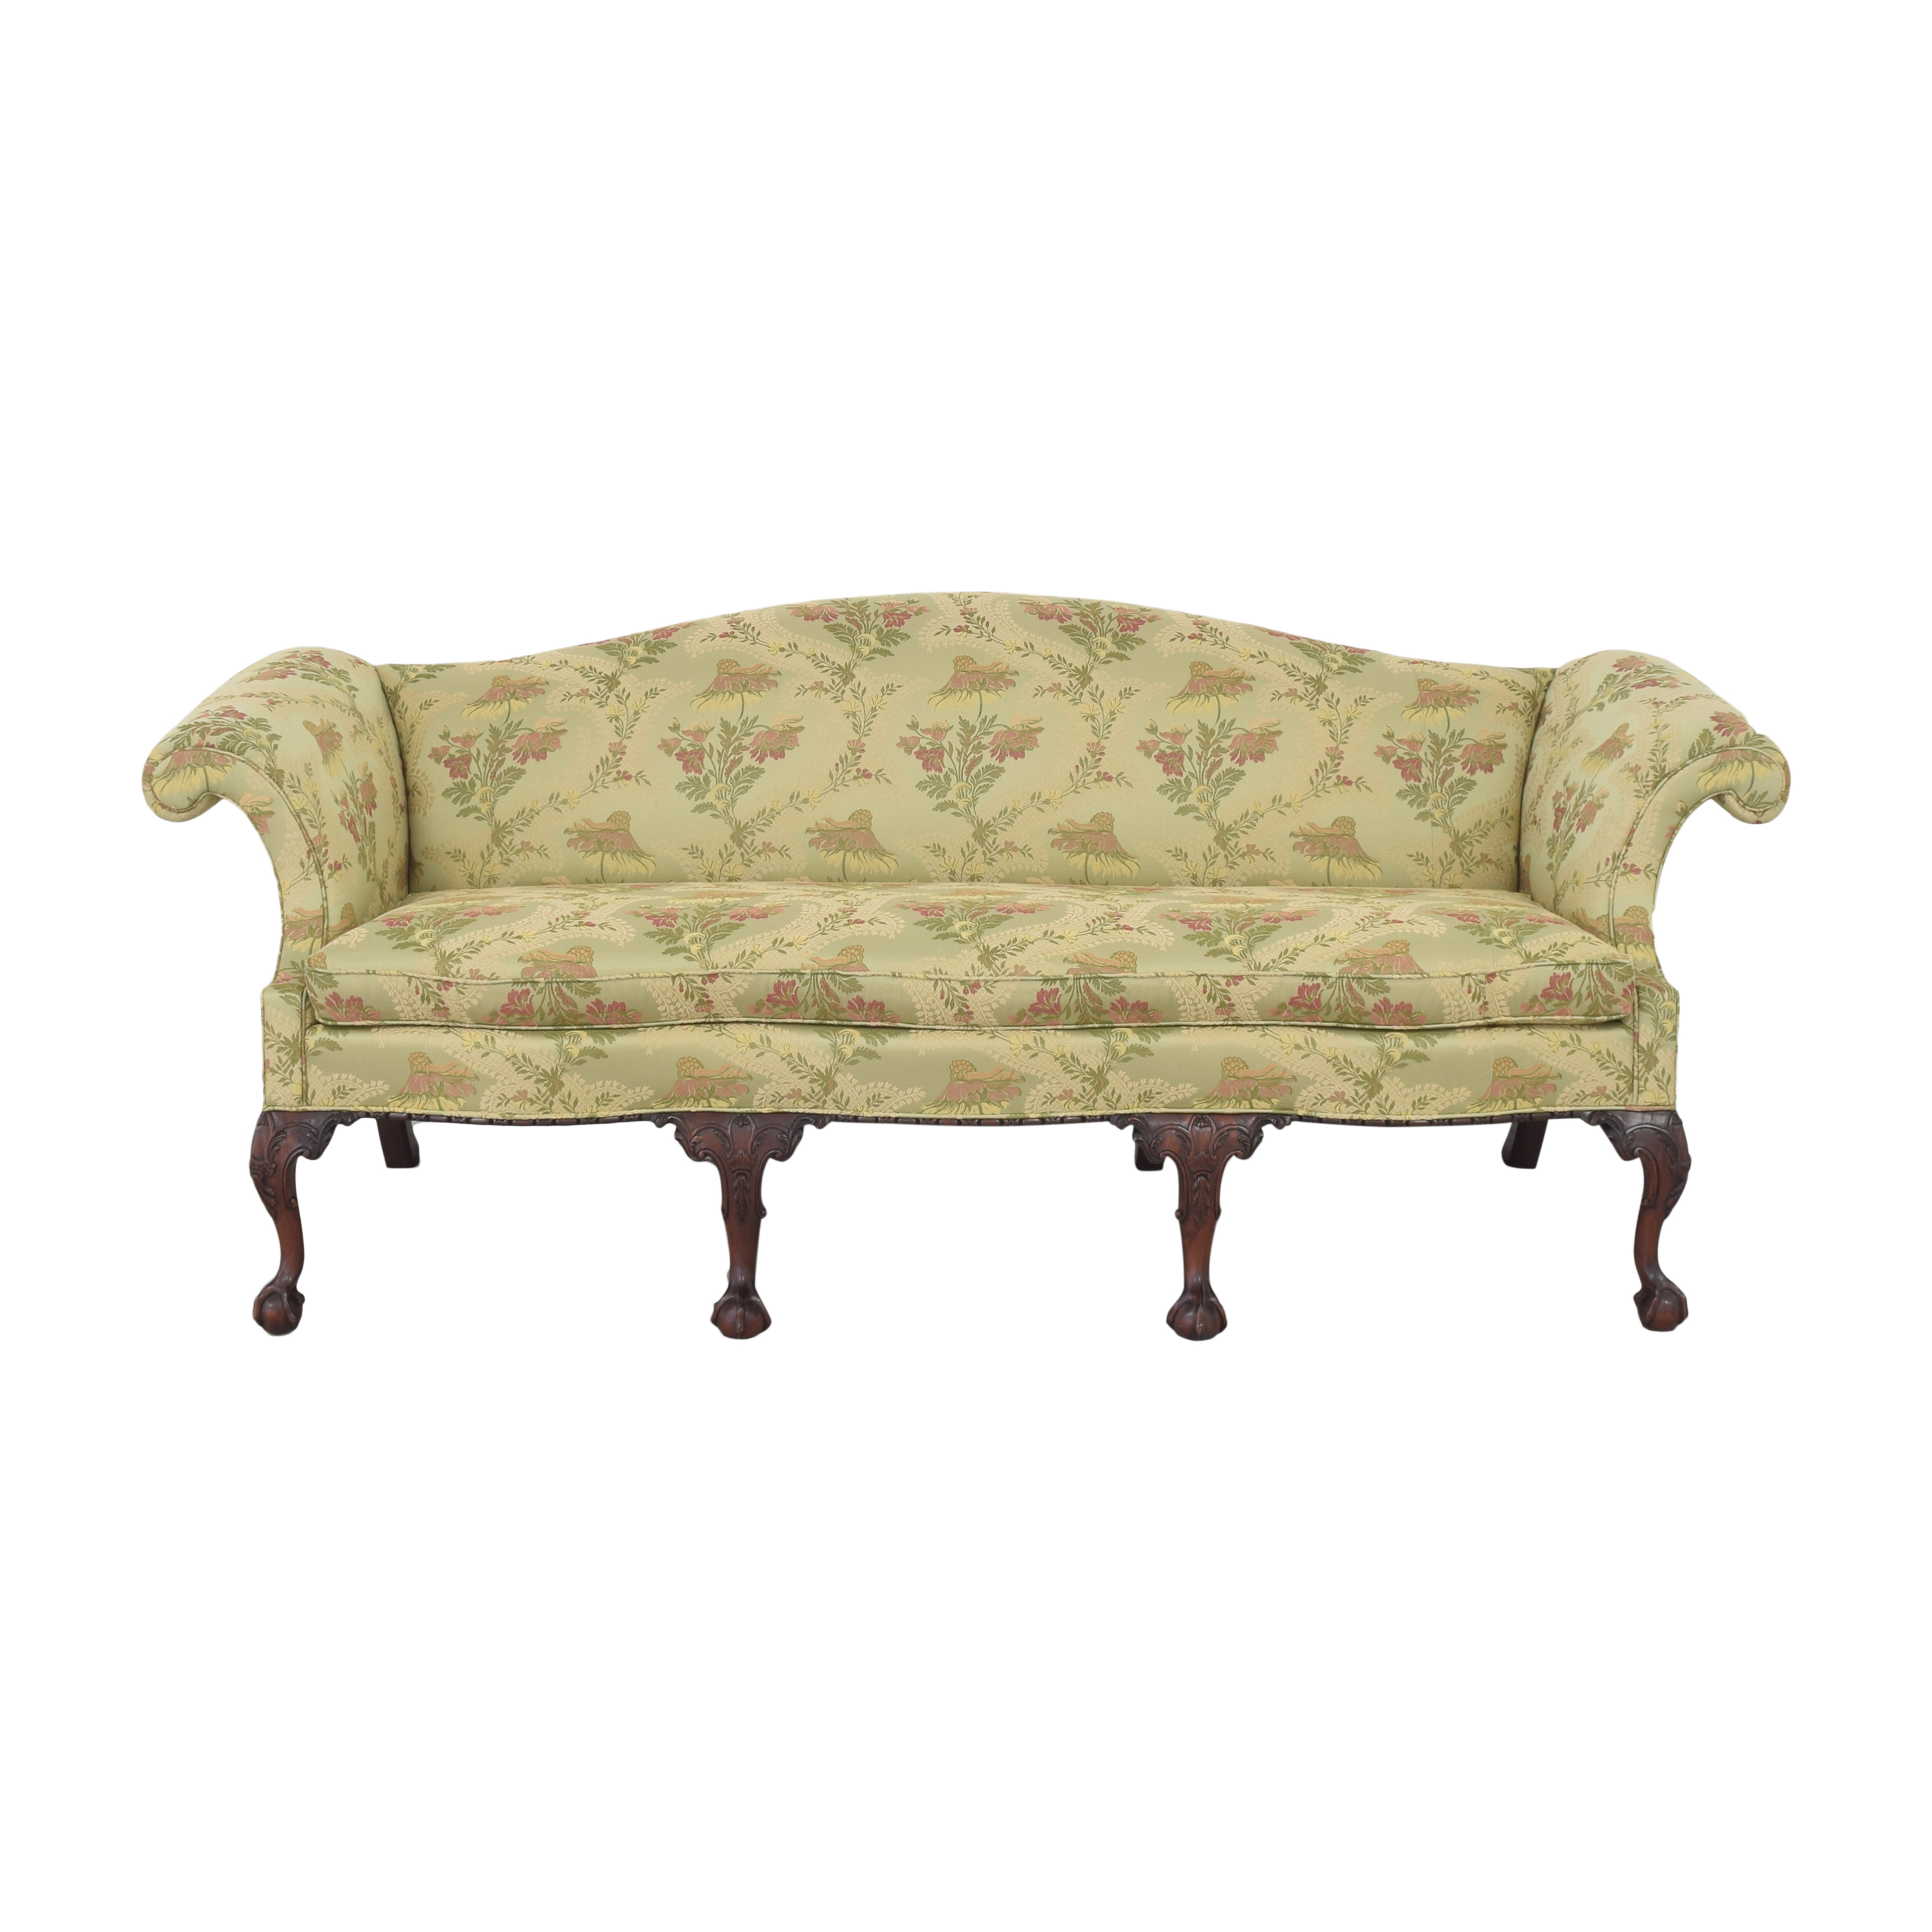 Stickley Furniture Stickley Williamsburg Colonial Style Sofa ct